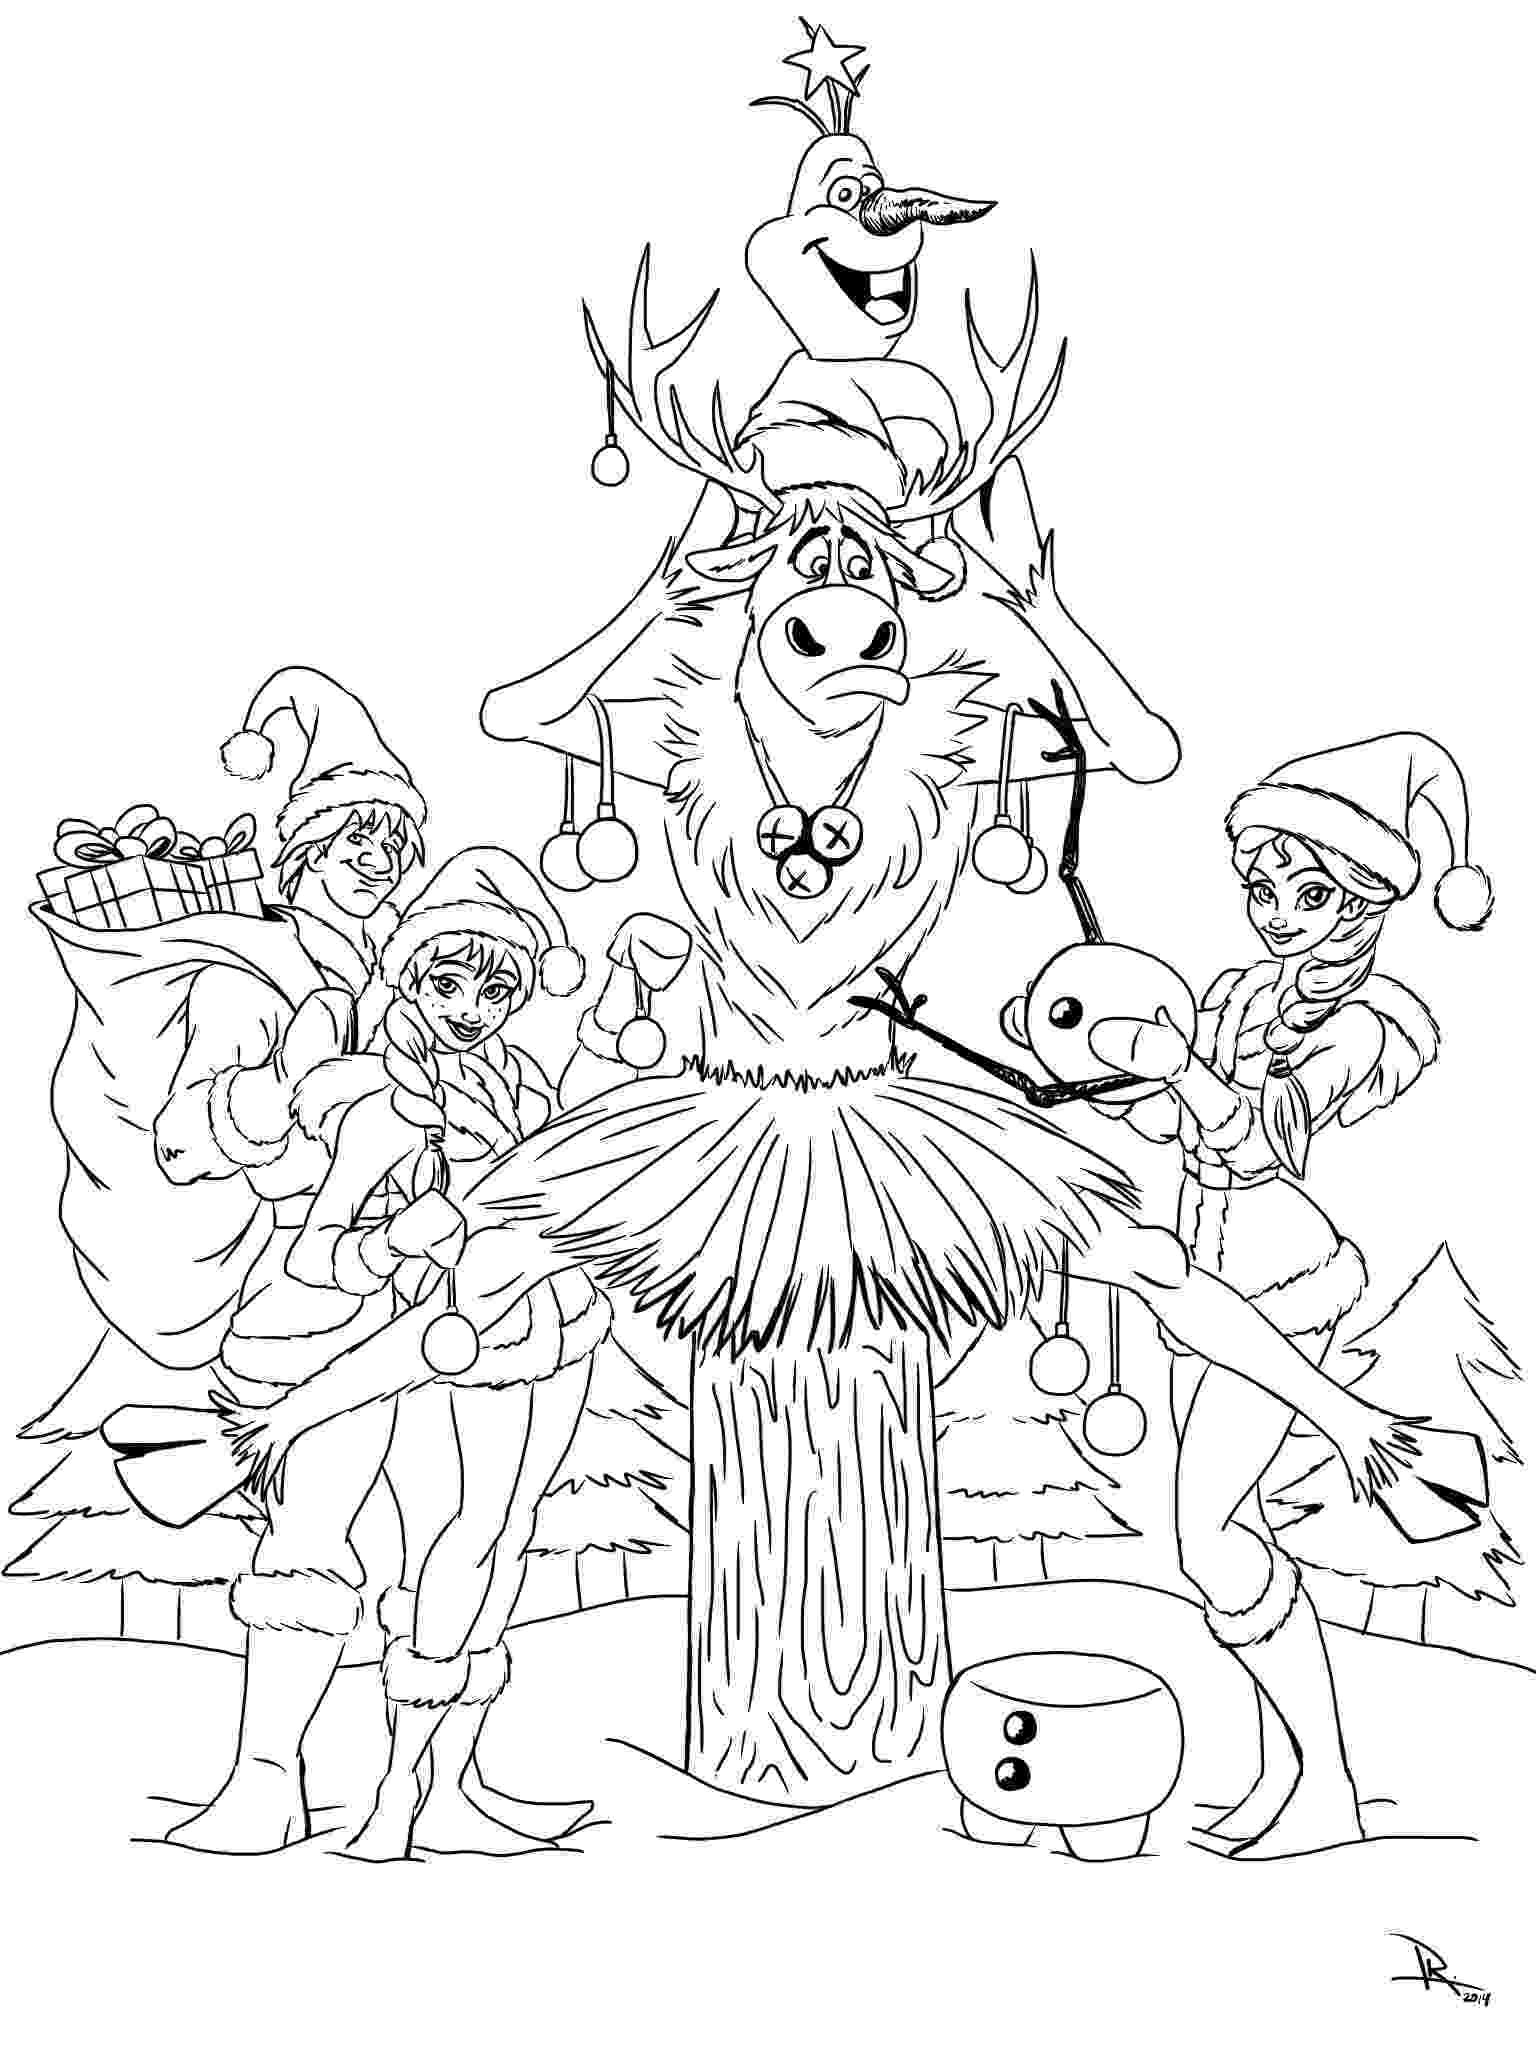 frozen coloring pages pdf disney frozen printable coloring pages disney coloring pages pdf frozen coloring